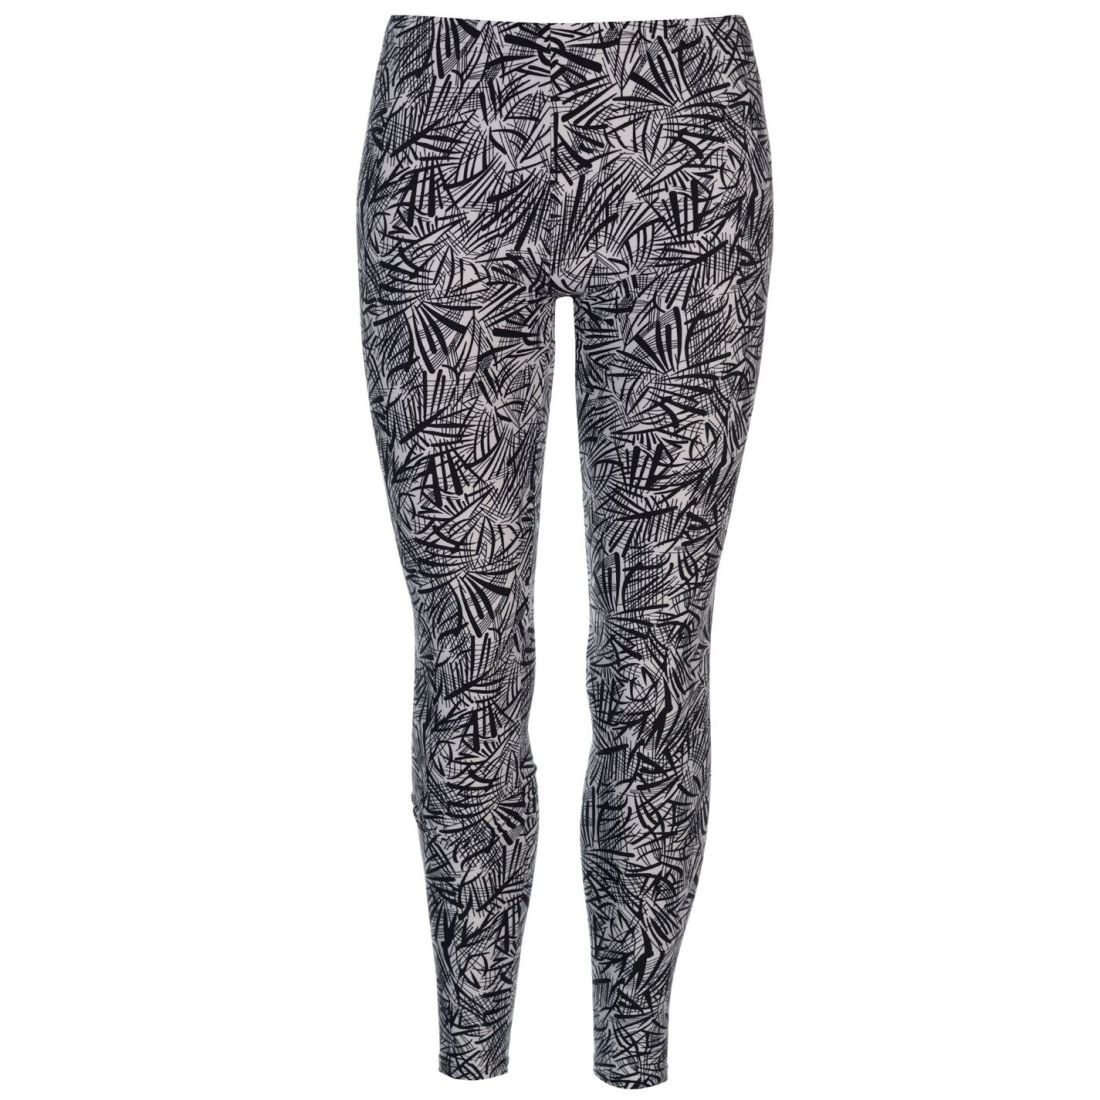 Image is loading Golddigga-Womens-Lux-Leggings-Pants-Trousers -Bottoms-Pattern- 7c78034357